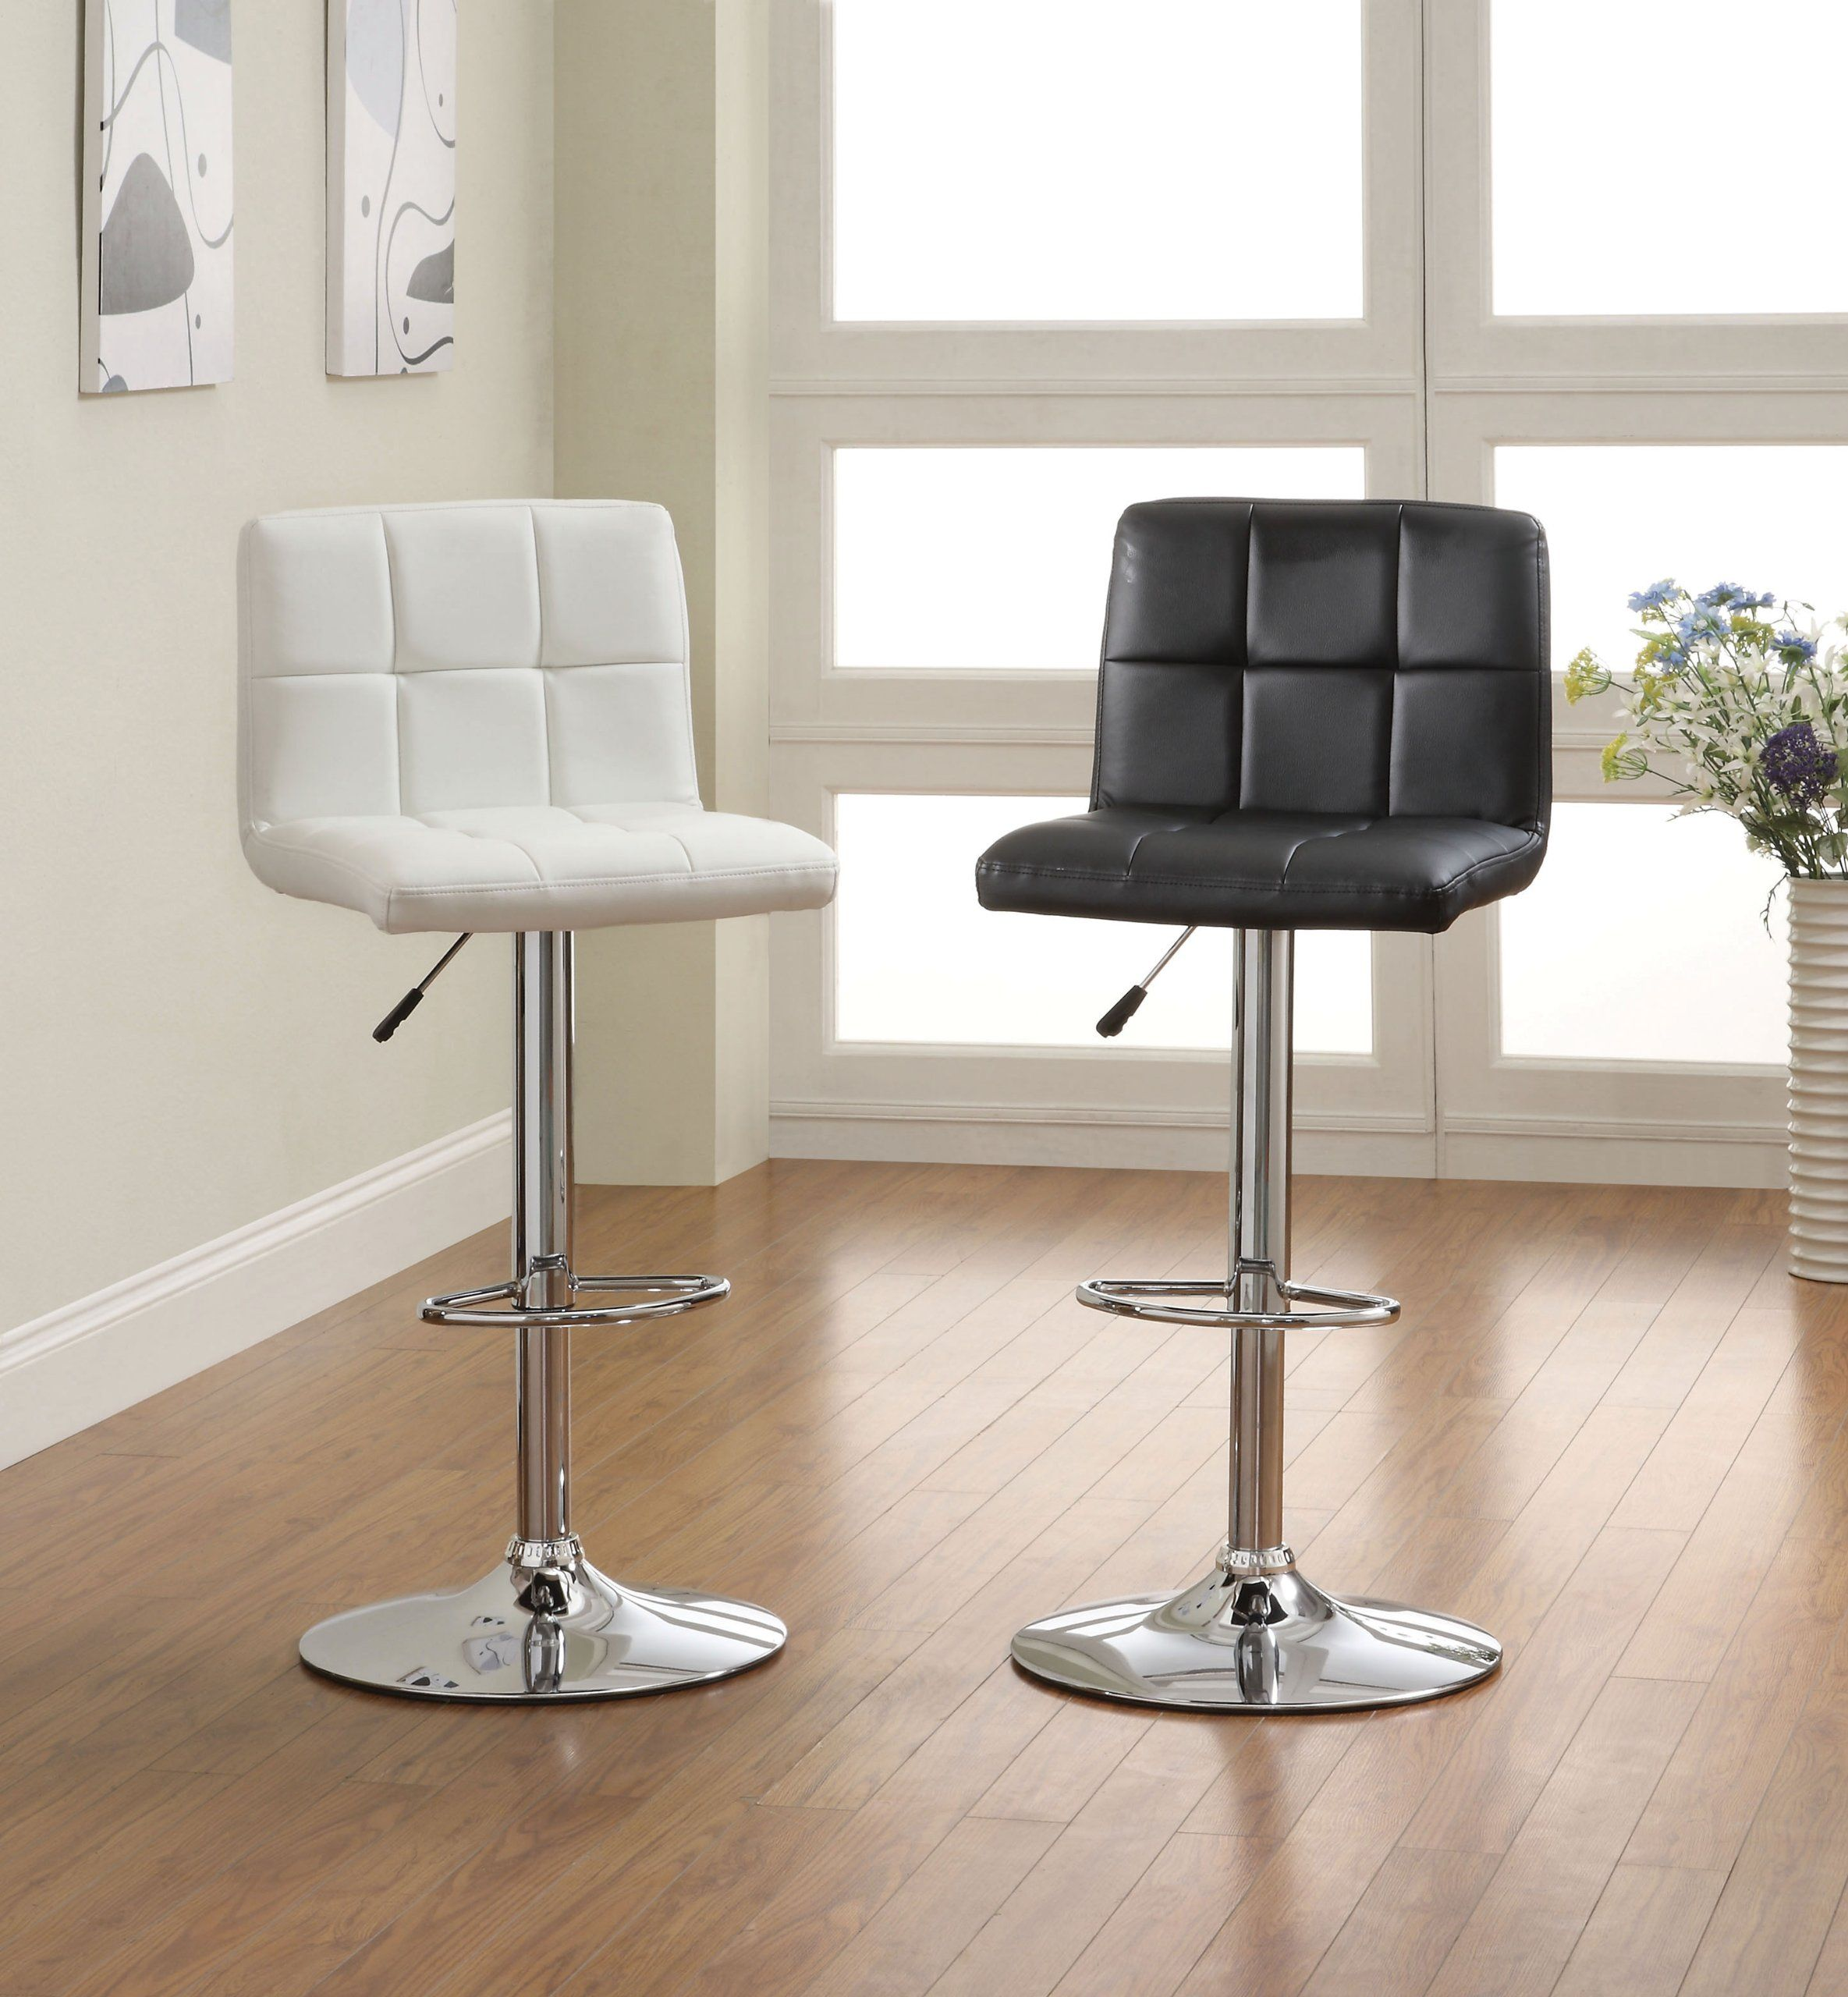 Pepperton Tufted Swivel Counter Stool In 2019: Roundhill Swivel Black Leather Adjustable